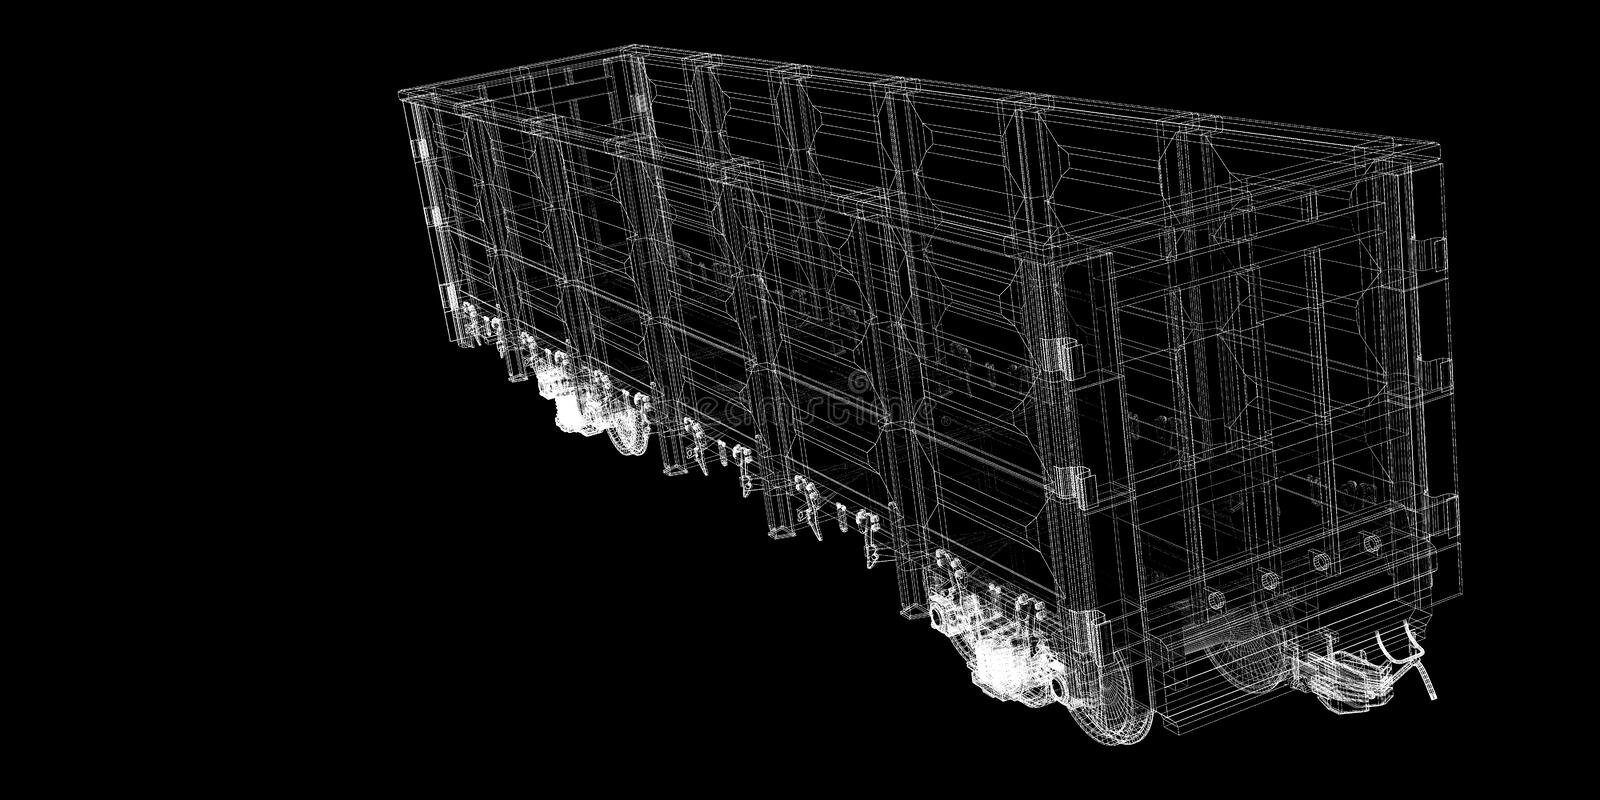 Boxcar. Railway carriagebody structure, wire model royalty free stock images